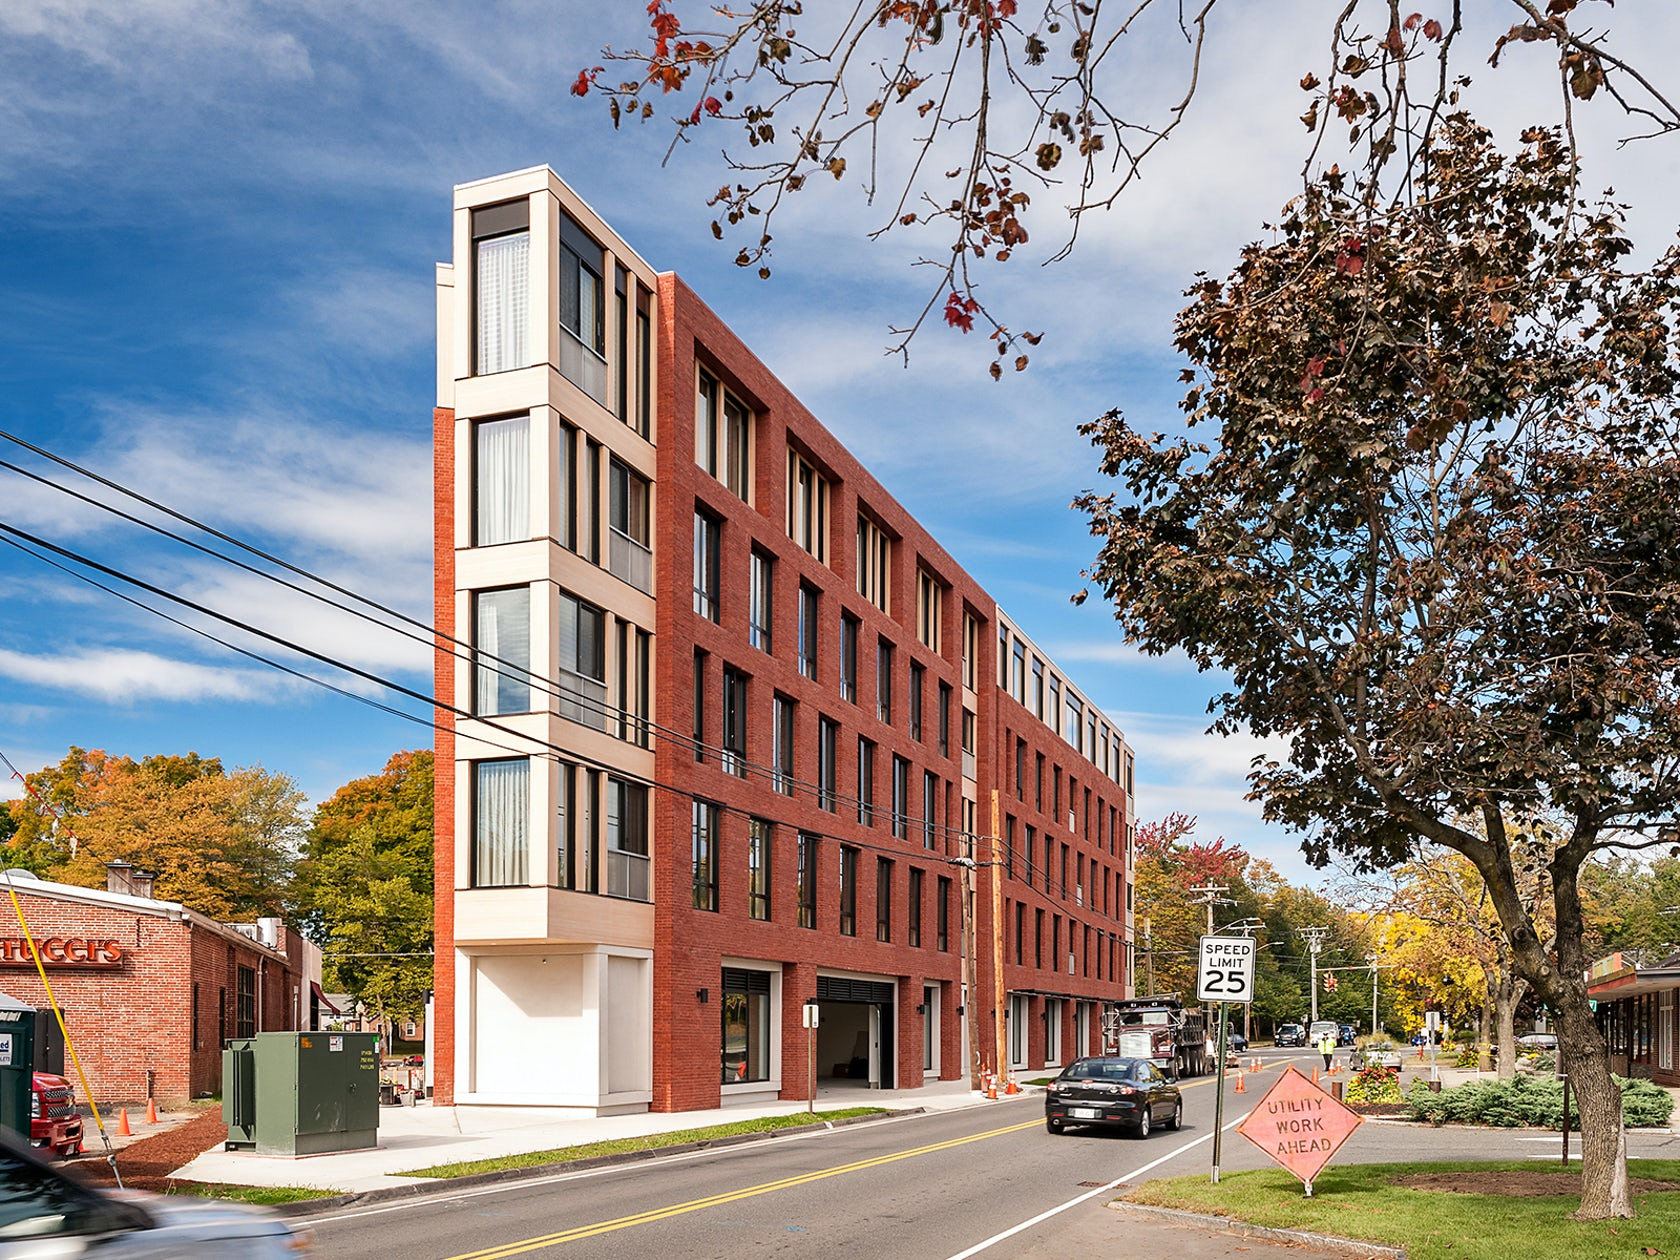 Holst architecture architizer for College street motors amherst ma